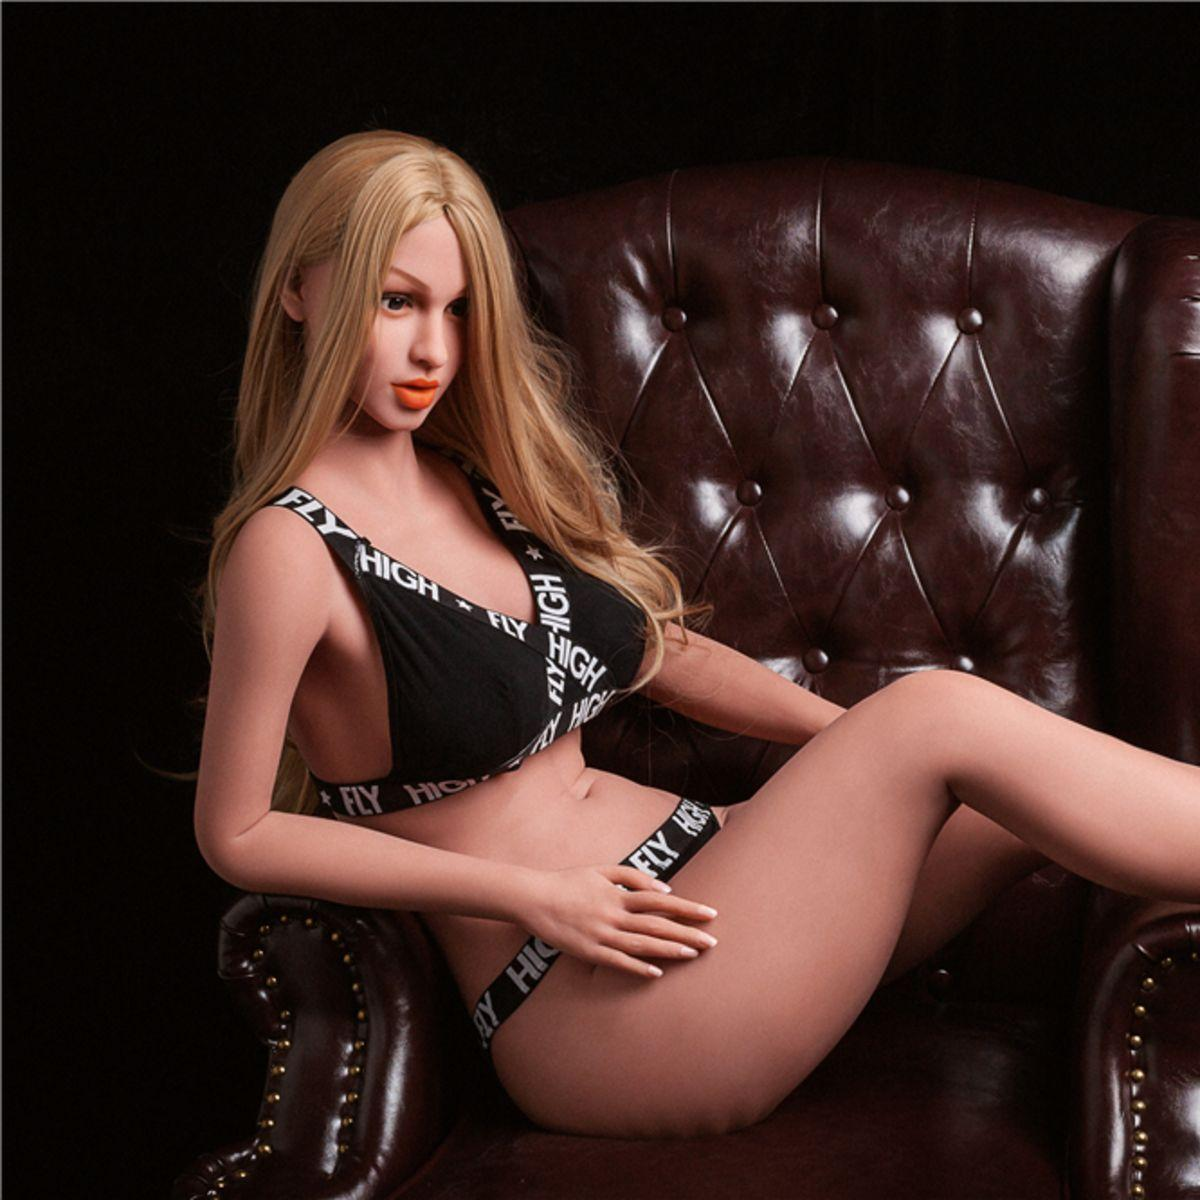 Neodoll Racy Anna - Realistic Sex Doll - 160cm - Brown